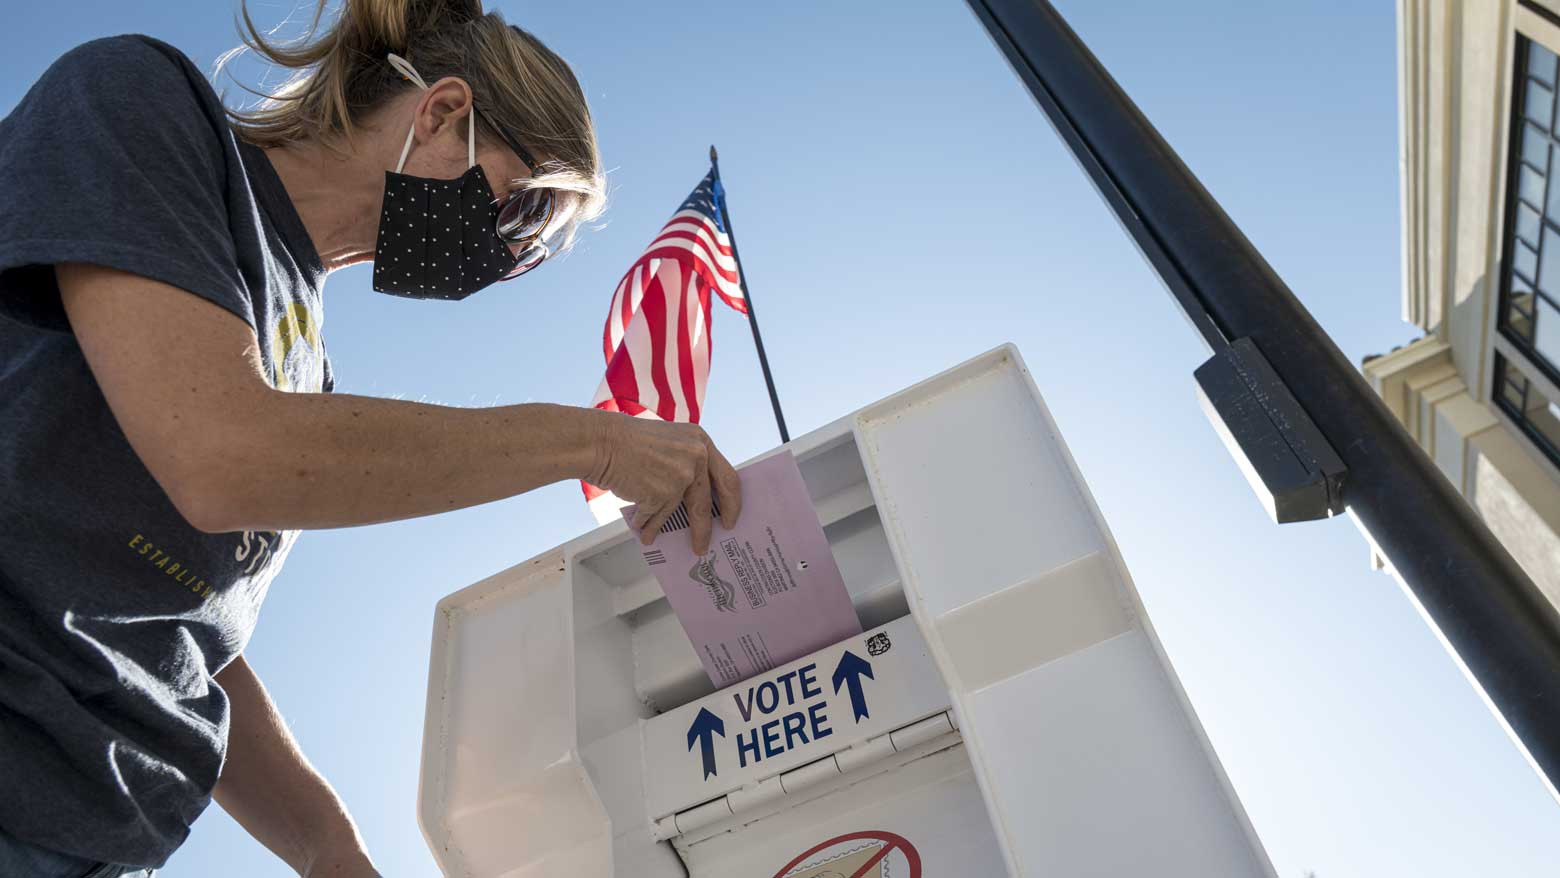 Concerns about voting integrity in US